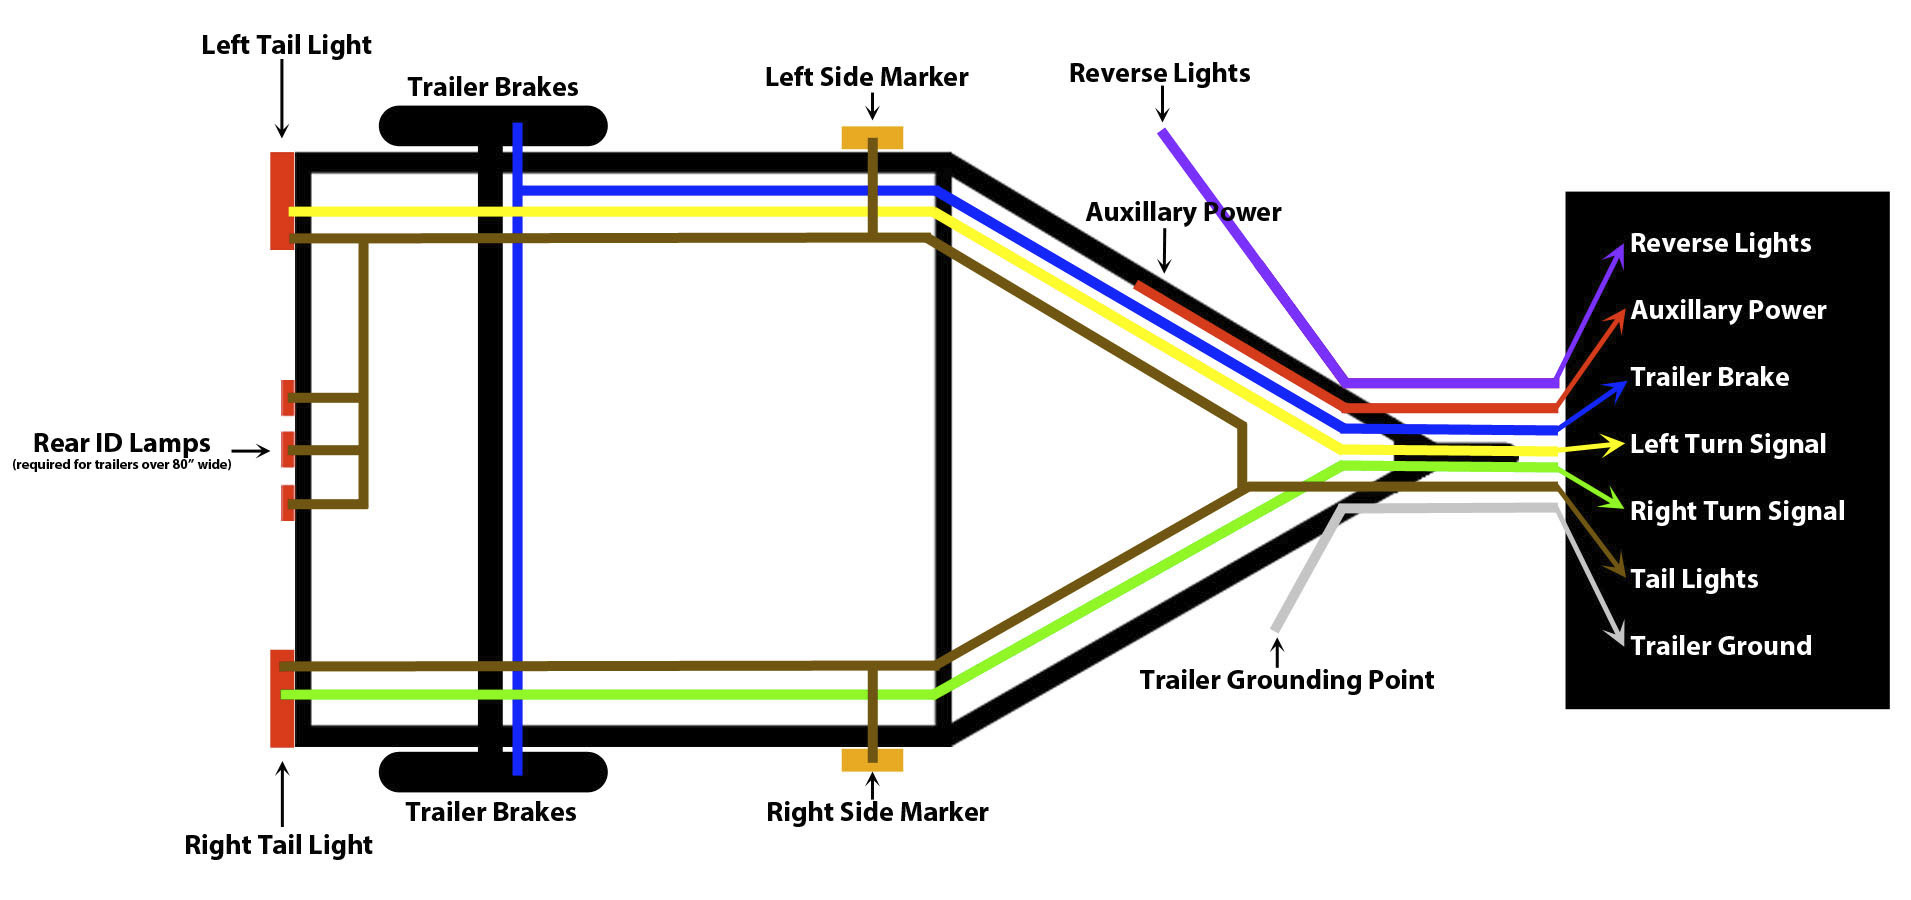 How To Wire Trailer Lights - Trailer Wiring Guide & Videos - Wiring Diagram For Trailer Lights 5 Way